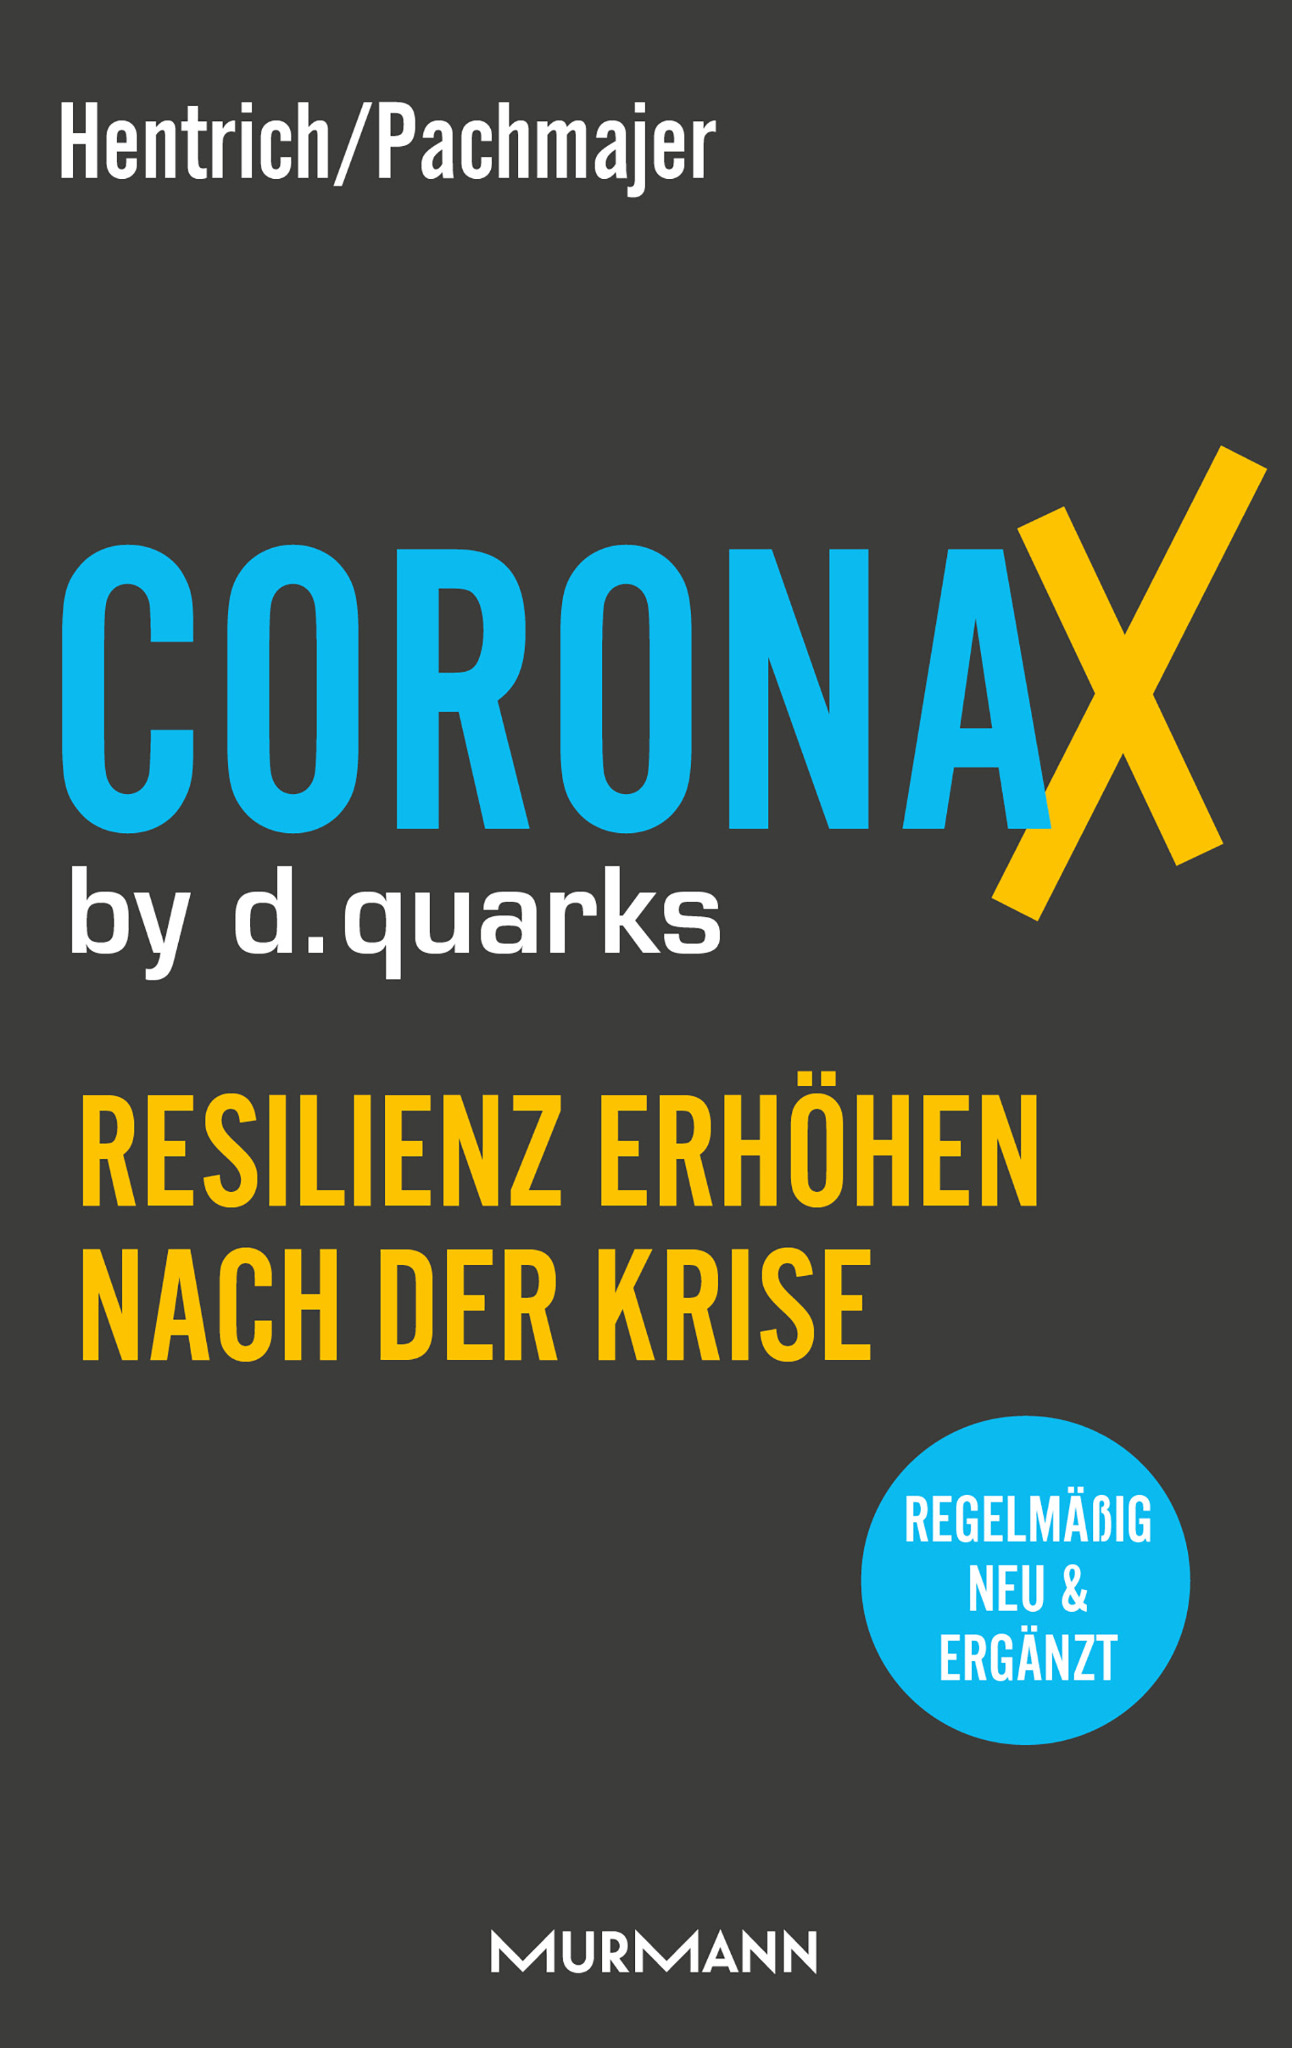 CoronaX by d.quarks / Michael Pachmajer, Carsten Hentrich (E-Book-Serie)